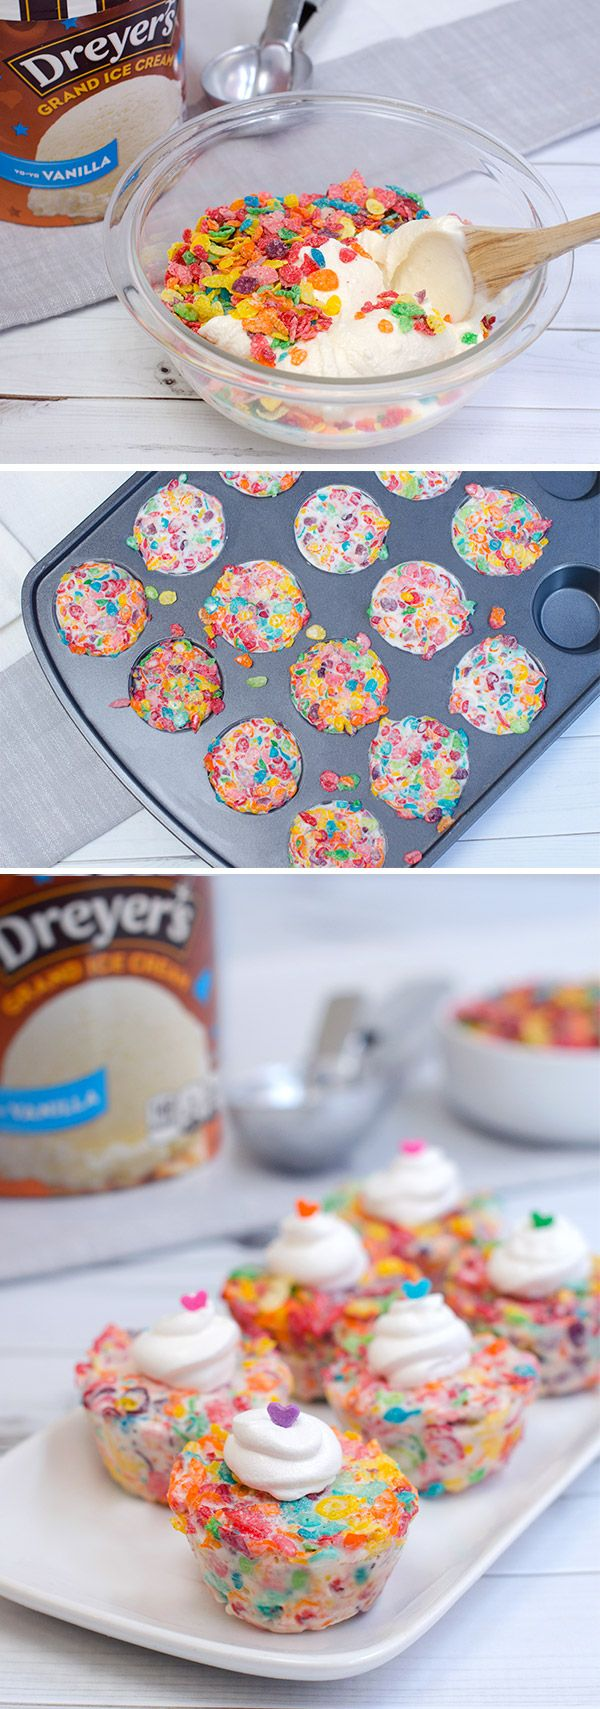 Dreyer's Funfetti Crunchers: These bite-sized treats are colorful, crunchy, and kid-approved! Simply mix Dreyer's Vanilla ice cream with fruity cereal, press into muffin tins and refreeze. Then, pop them out to enjoy a fun-tastic dessert that will turn any ordinary night into a party!